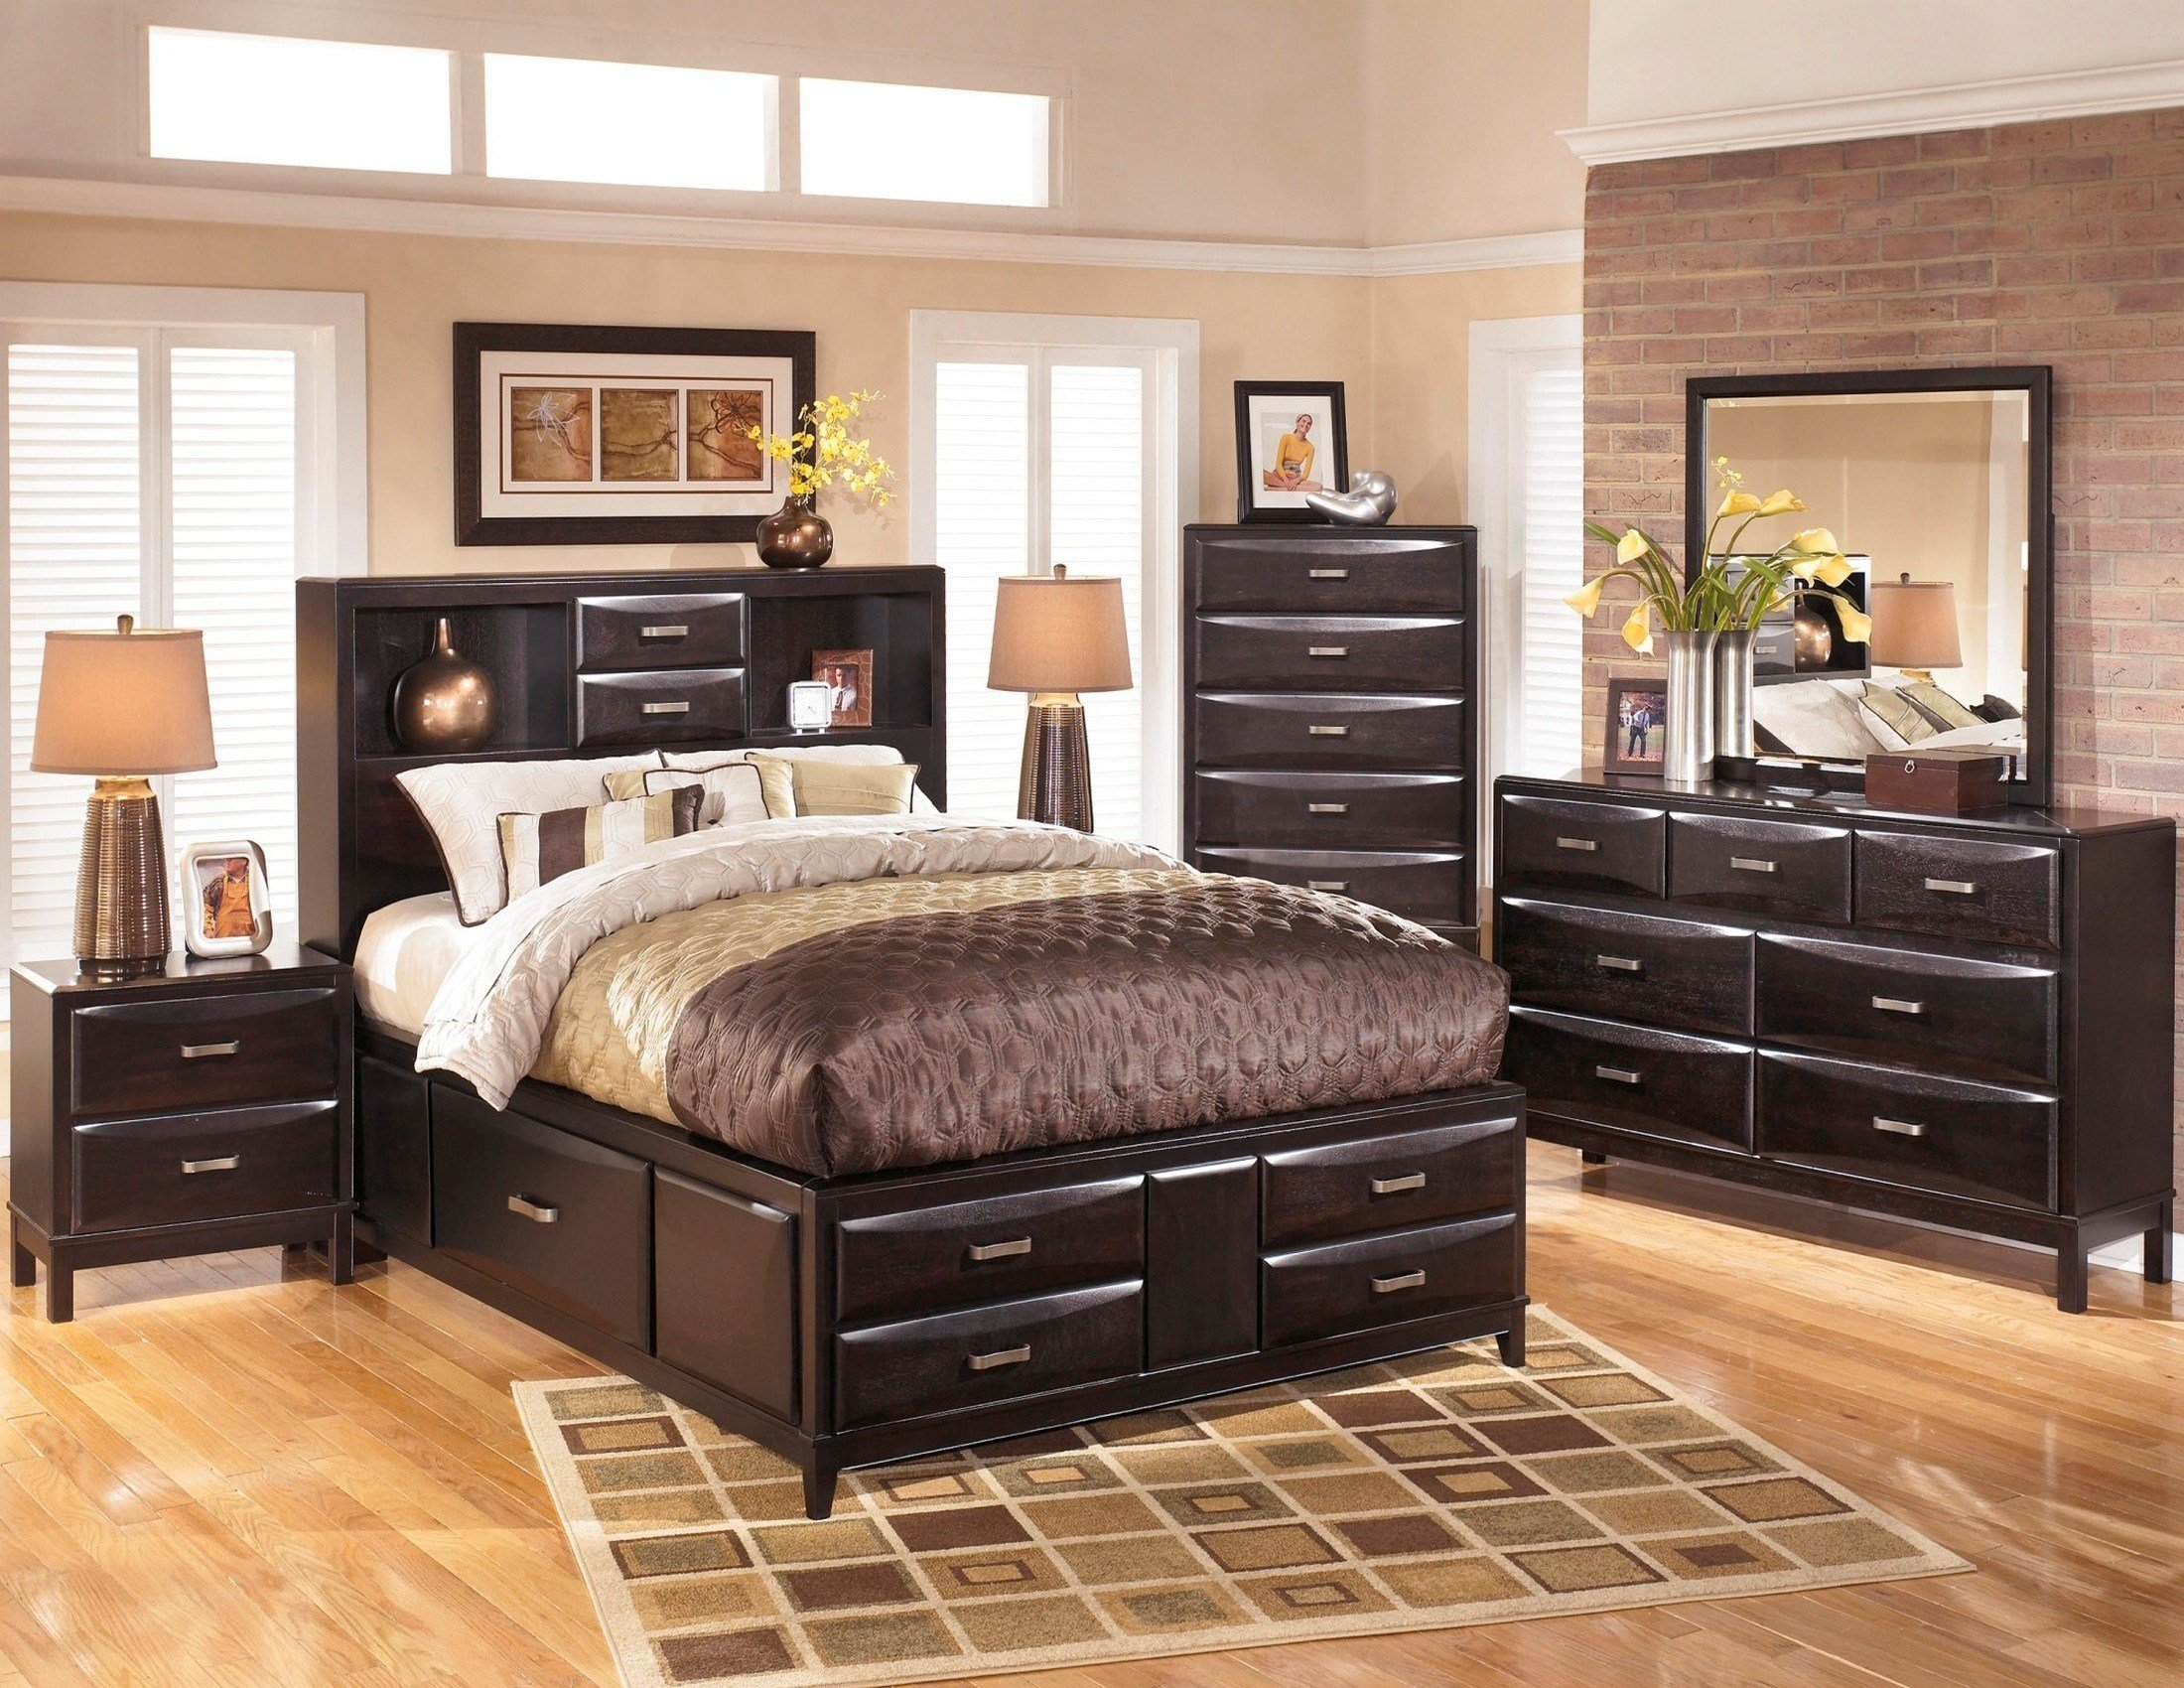 Best Kira Storage Platform Bedroom Set From Ashley B473 64 65 With Pictures